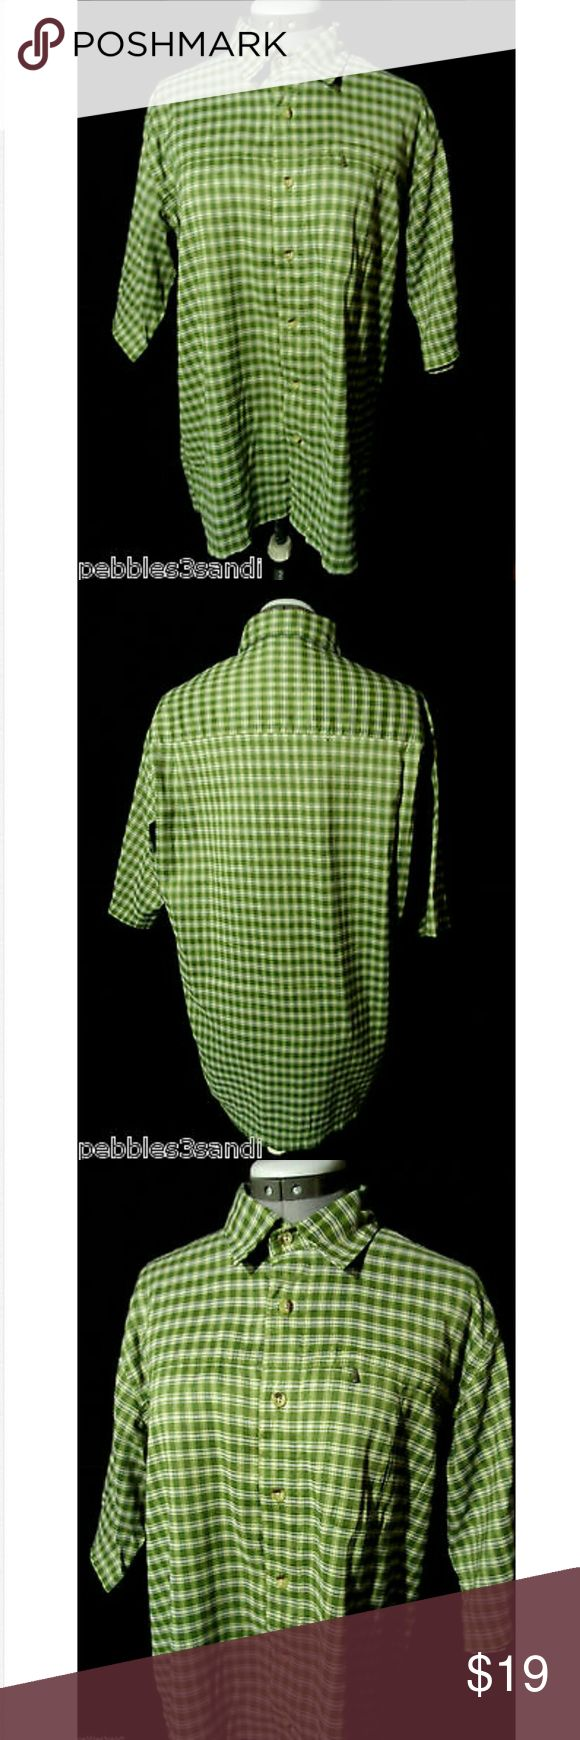 "RED HEAD Western Shirt Plaid Green men M Individual monitors may display slightly different colors or hues...?  RED HEAD WESTERN SHIRT?  TAG SIZE: M CHEST: 46"" LENGTH: 27"" from top of shoulder down SLEEVE LENGTH: Short? Lightweight MODAL blendZippered breast pocketFull button up frontGreen, light yellow and white in colorMinimal wash and wear. Check out my other discount mens clothing! RED HEAD Shirts Casual Button Down Shirts"